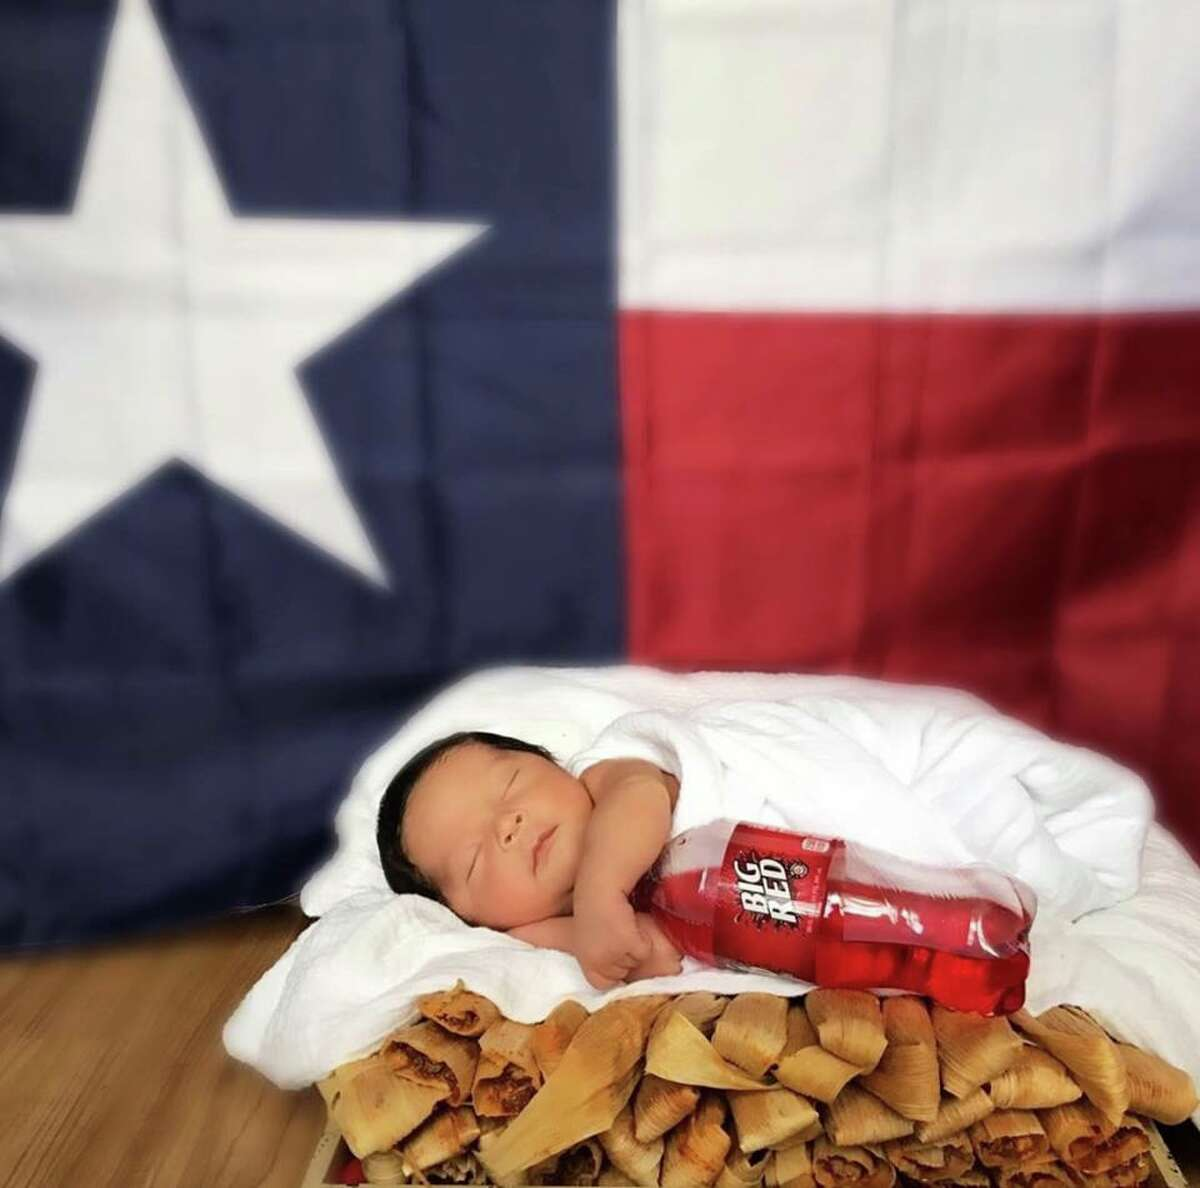 Christina and Javier Sustaita got their son Thomas acclimated with the world and most importantly - the Texas way of life -at the end of March by snapping a viral photo of the little one asleep on a stack of tamales and cuddling a bottle of Big Red.